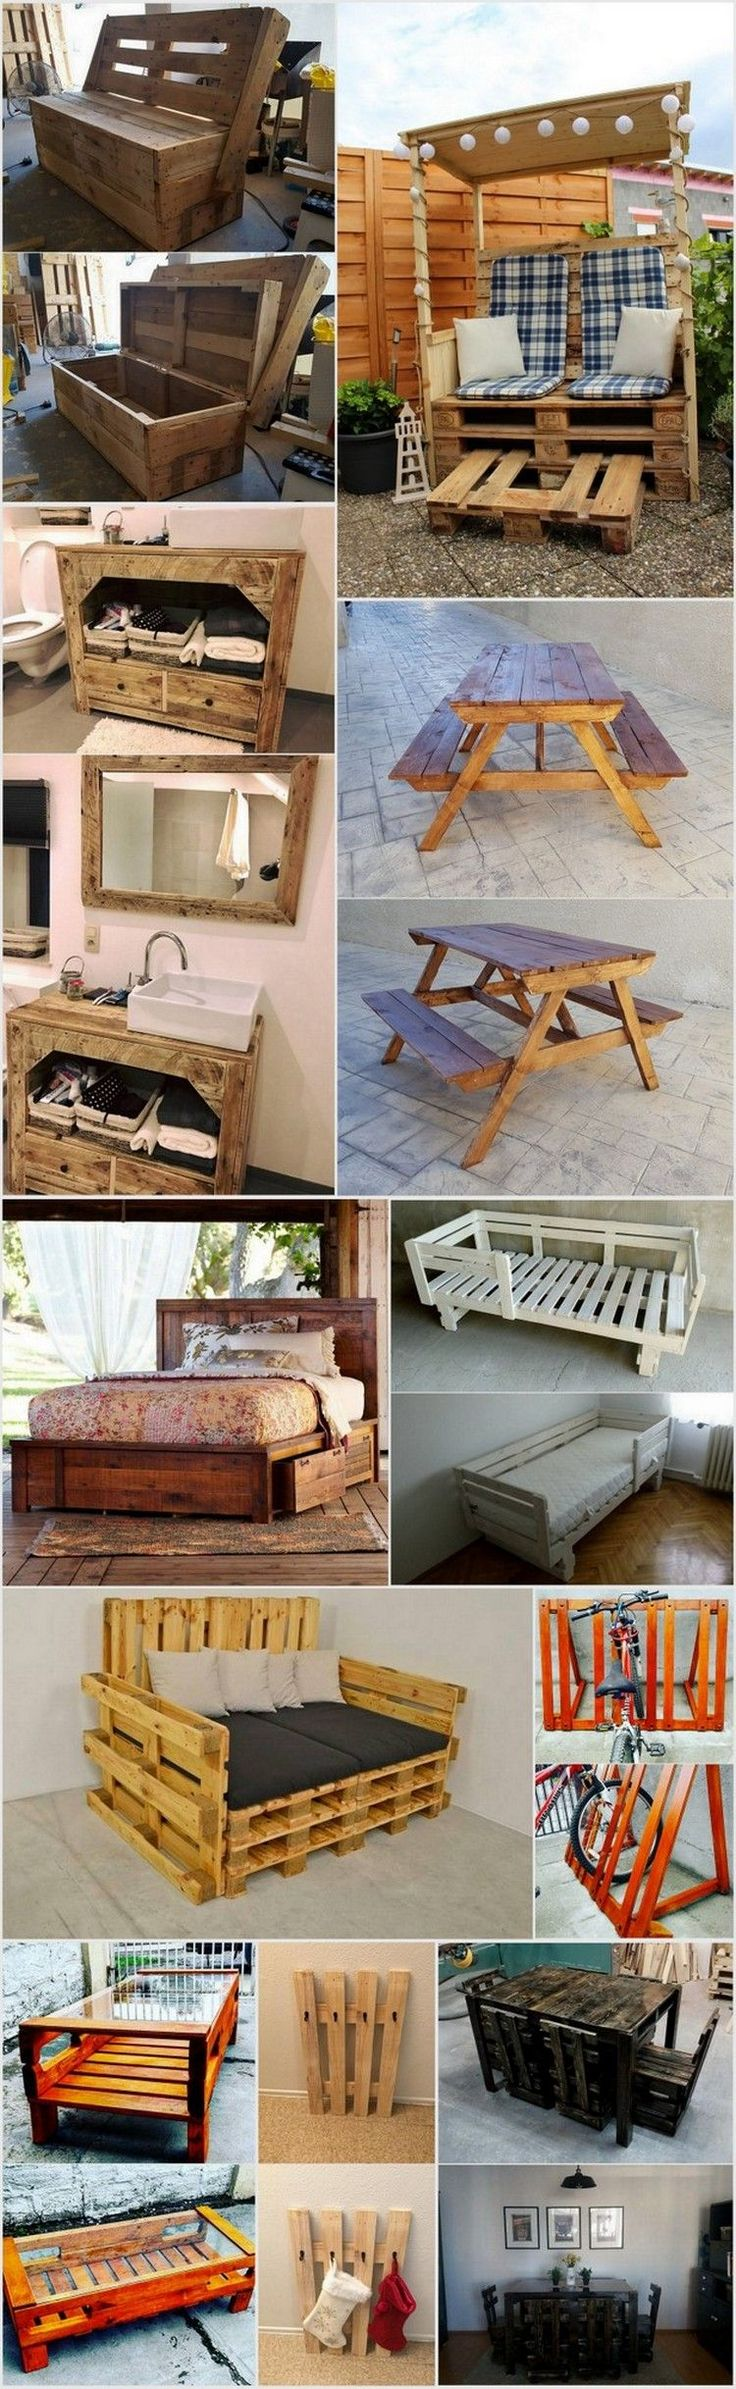 Fun Ways to Repurposed the Used Wood Pallets